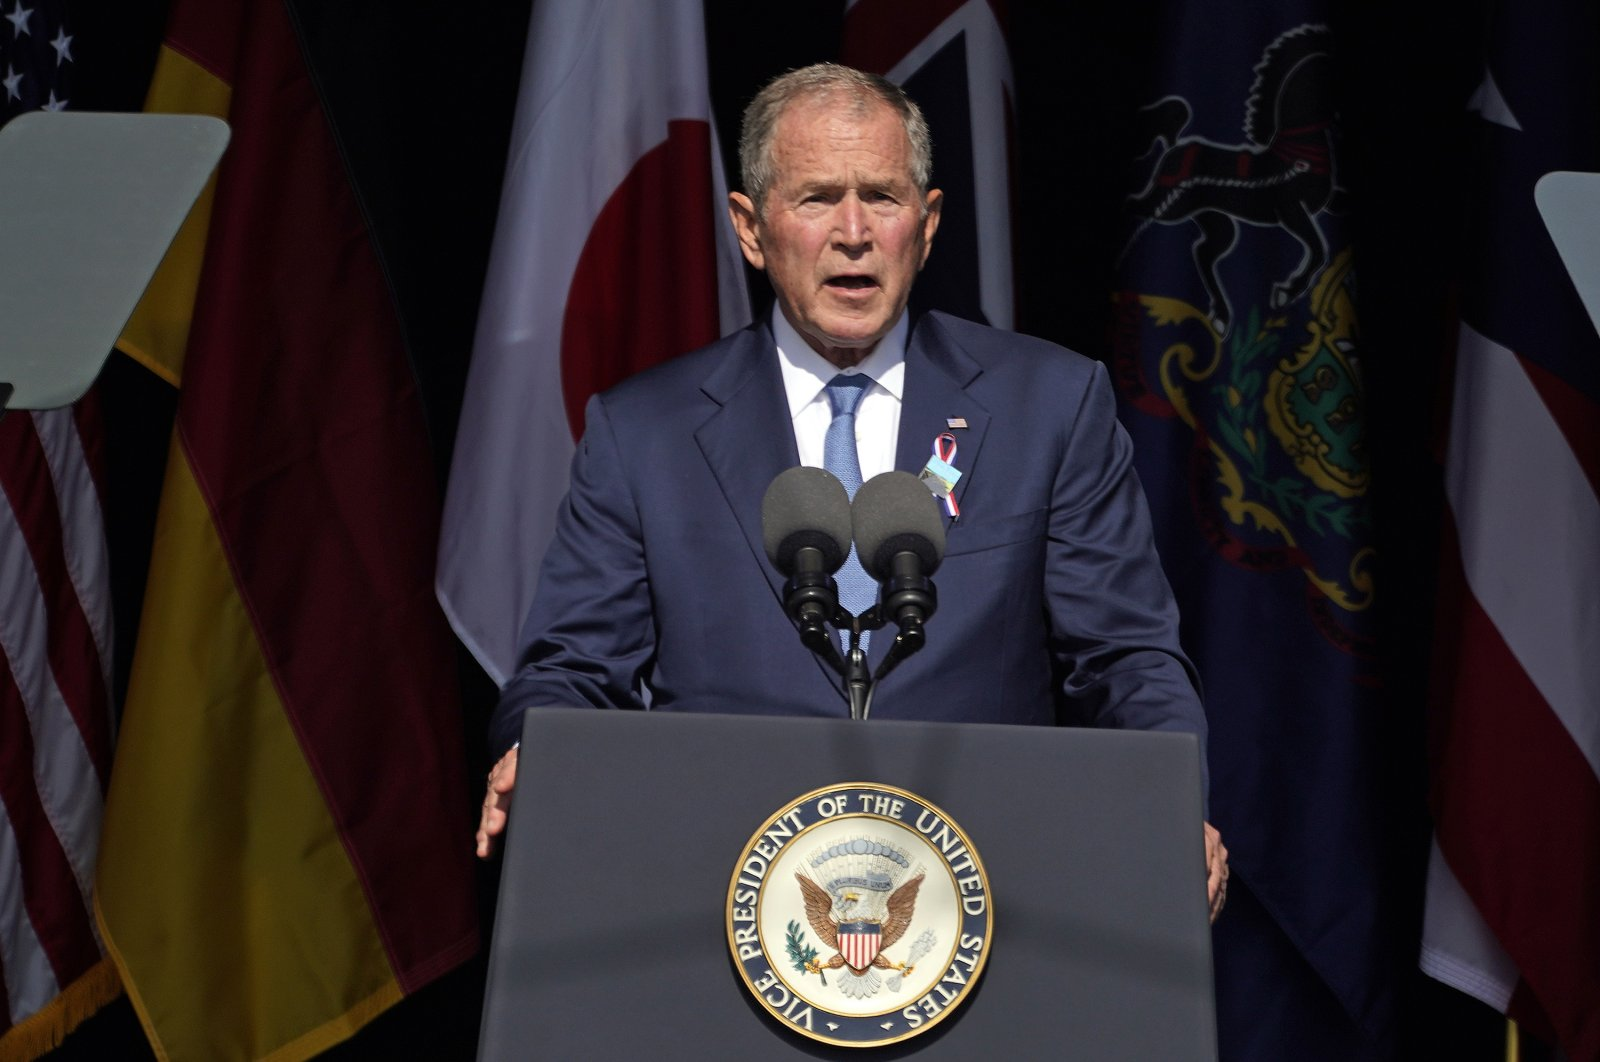 Former President George W. Bush speaks at the Flight 93 National Memorial in Shanksville, Pa., on the 20th anniversary of the Sept. 11, 2001 attacks, Sept. 11, 2021. (AP File Photo)